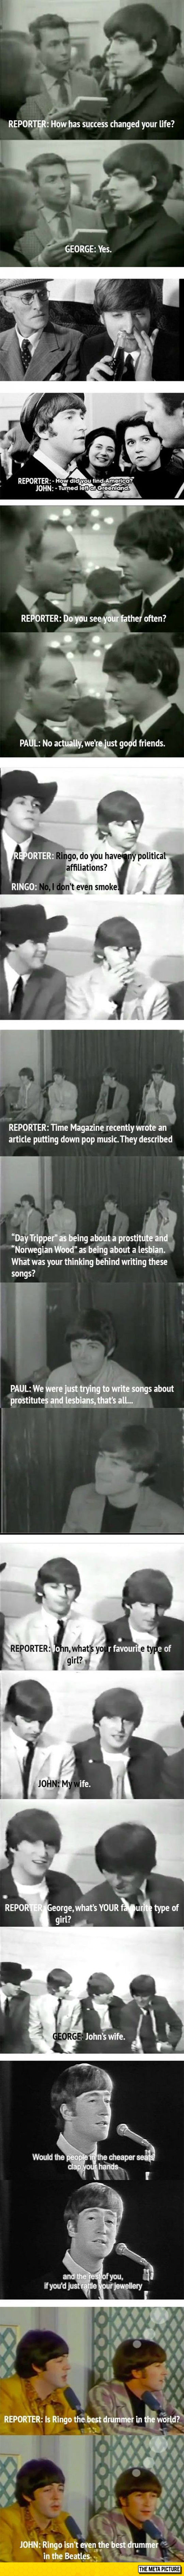 The Beatles were amazing at interviews